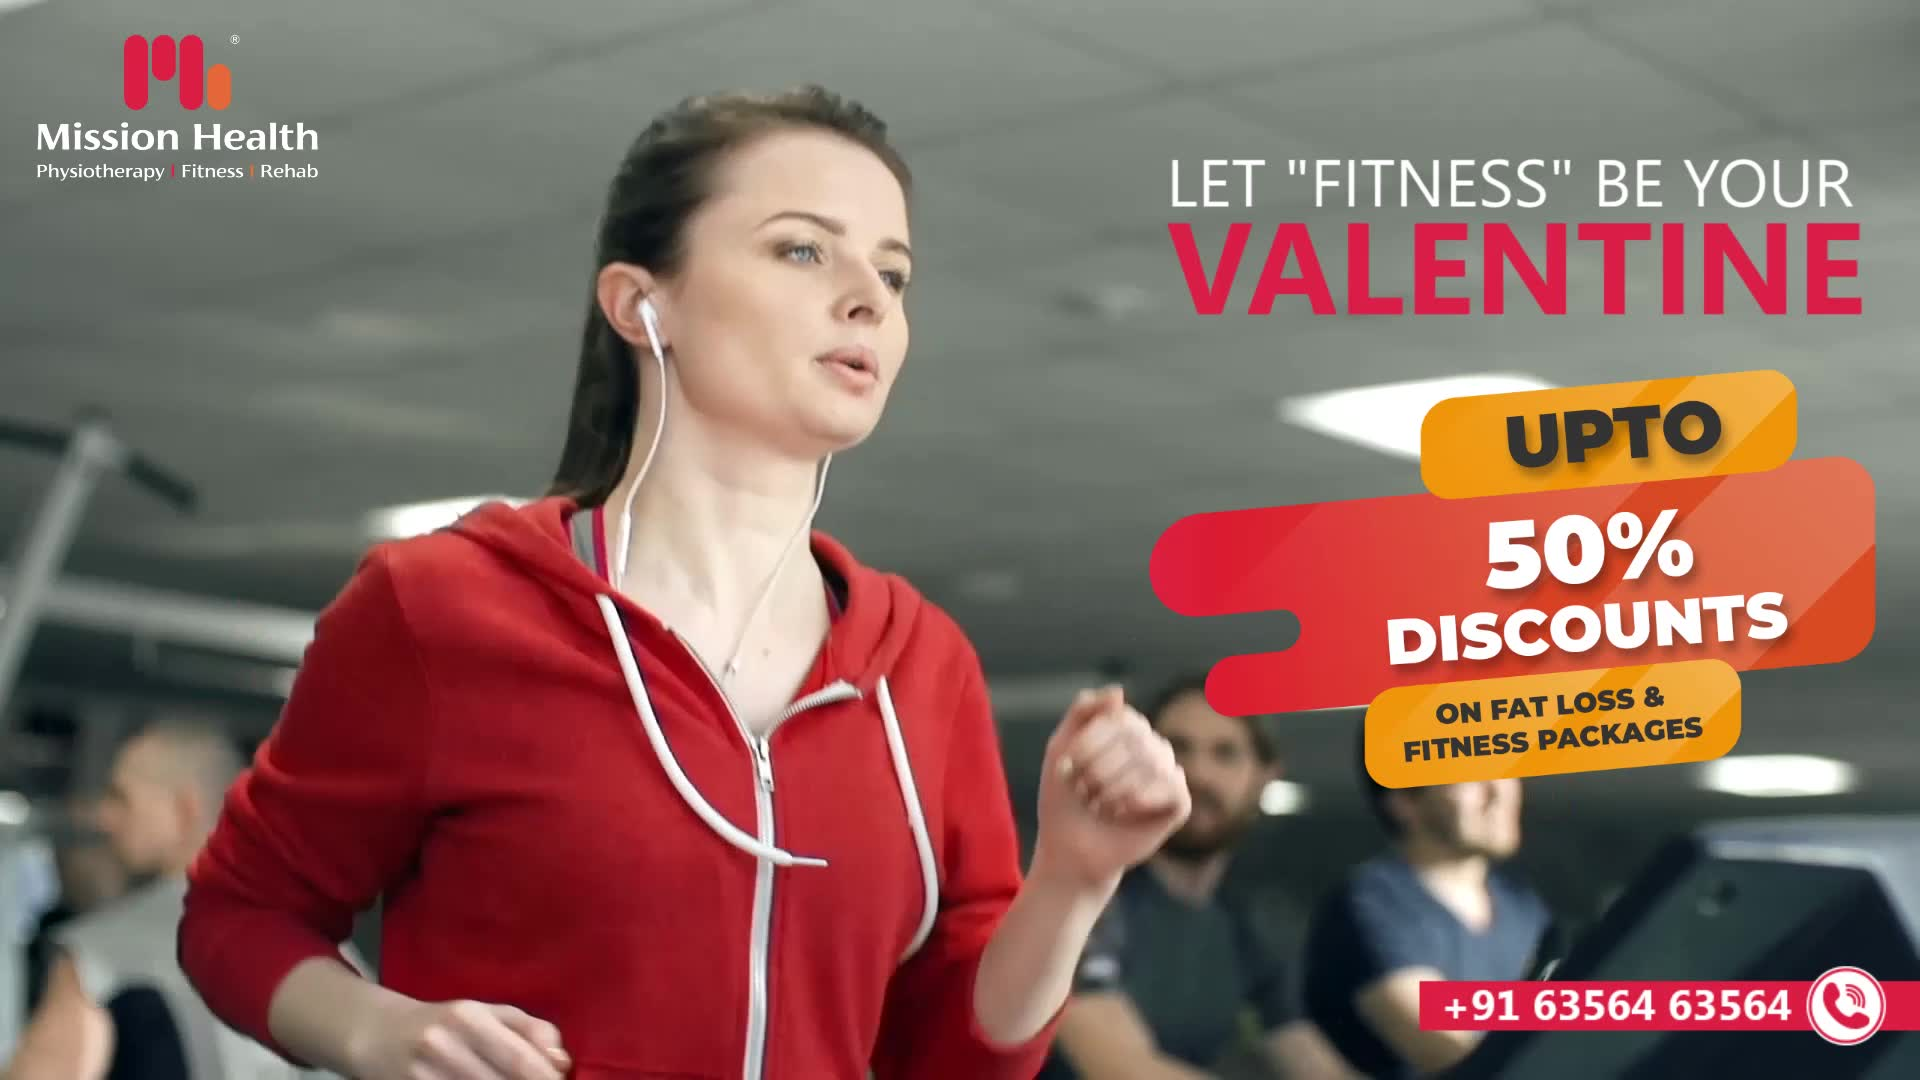 YOU are your First Love... Gift a year-long Health & Fitness Gift to yourself and your loved ones today on this Valentine Day  Up To 50% Discounts on Fitness Packages  Visit your nearest Mission Health Fitness Boutique  Call: +916356463564 Visit: www.missionhealth.co.in  #valentinefitnessoffer #exercise #exercises #fitnessexperts #fitnessexpert #fitnessteam #gymoholic #winterworkouts #fitness #winterfitness #befit #gymoffers #fitnessoffers #goslim #MissionHealth #MissionHealthIndia #MovementIsLife